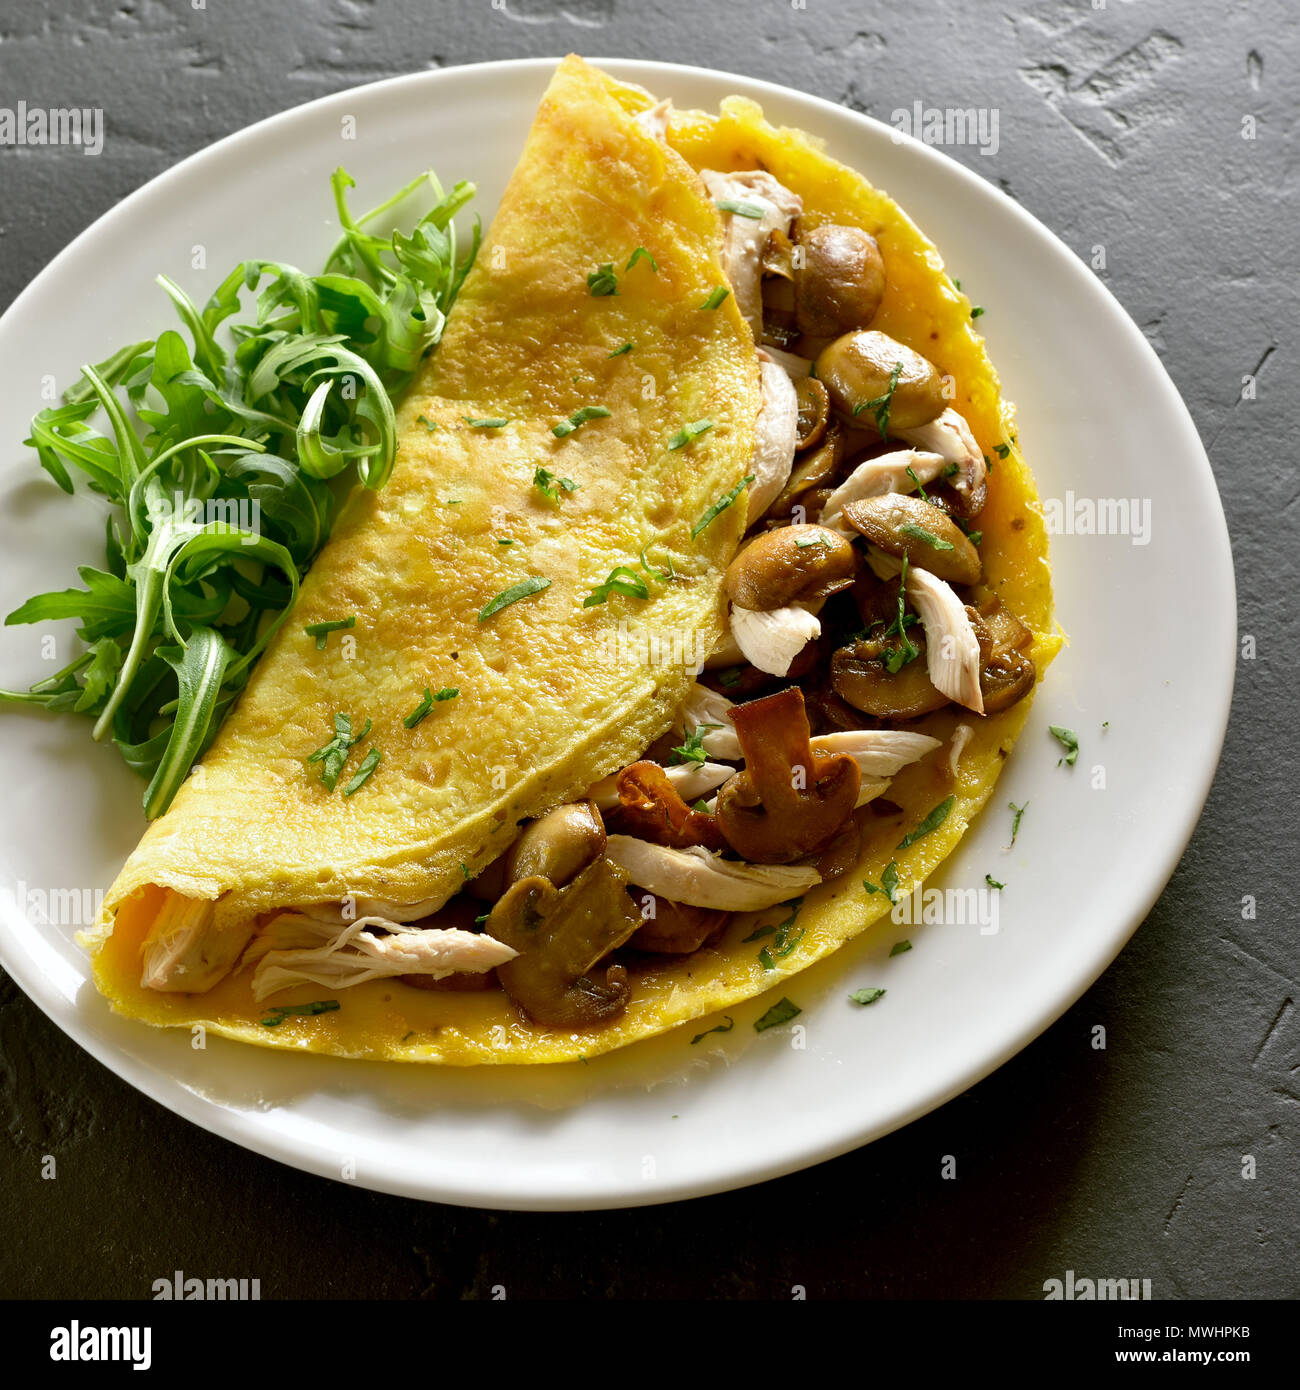 Close up of omelet stuffed with mushrooms, chicken meat, greens on black stone table. - Stock Image